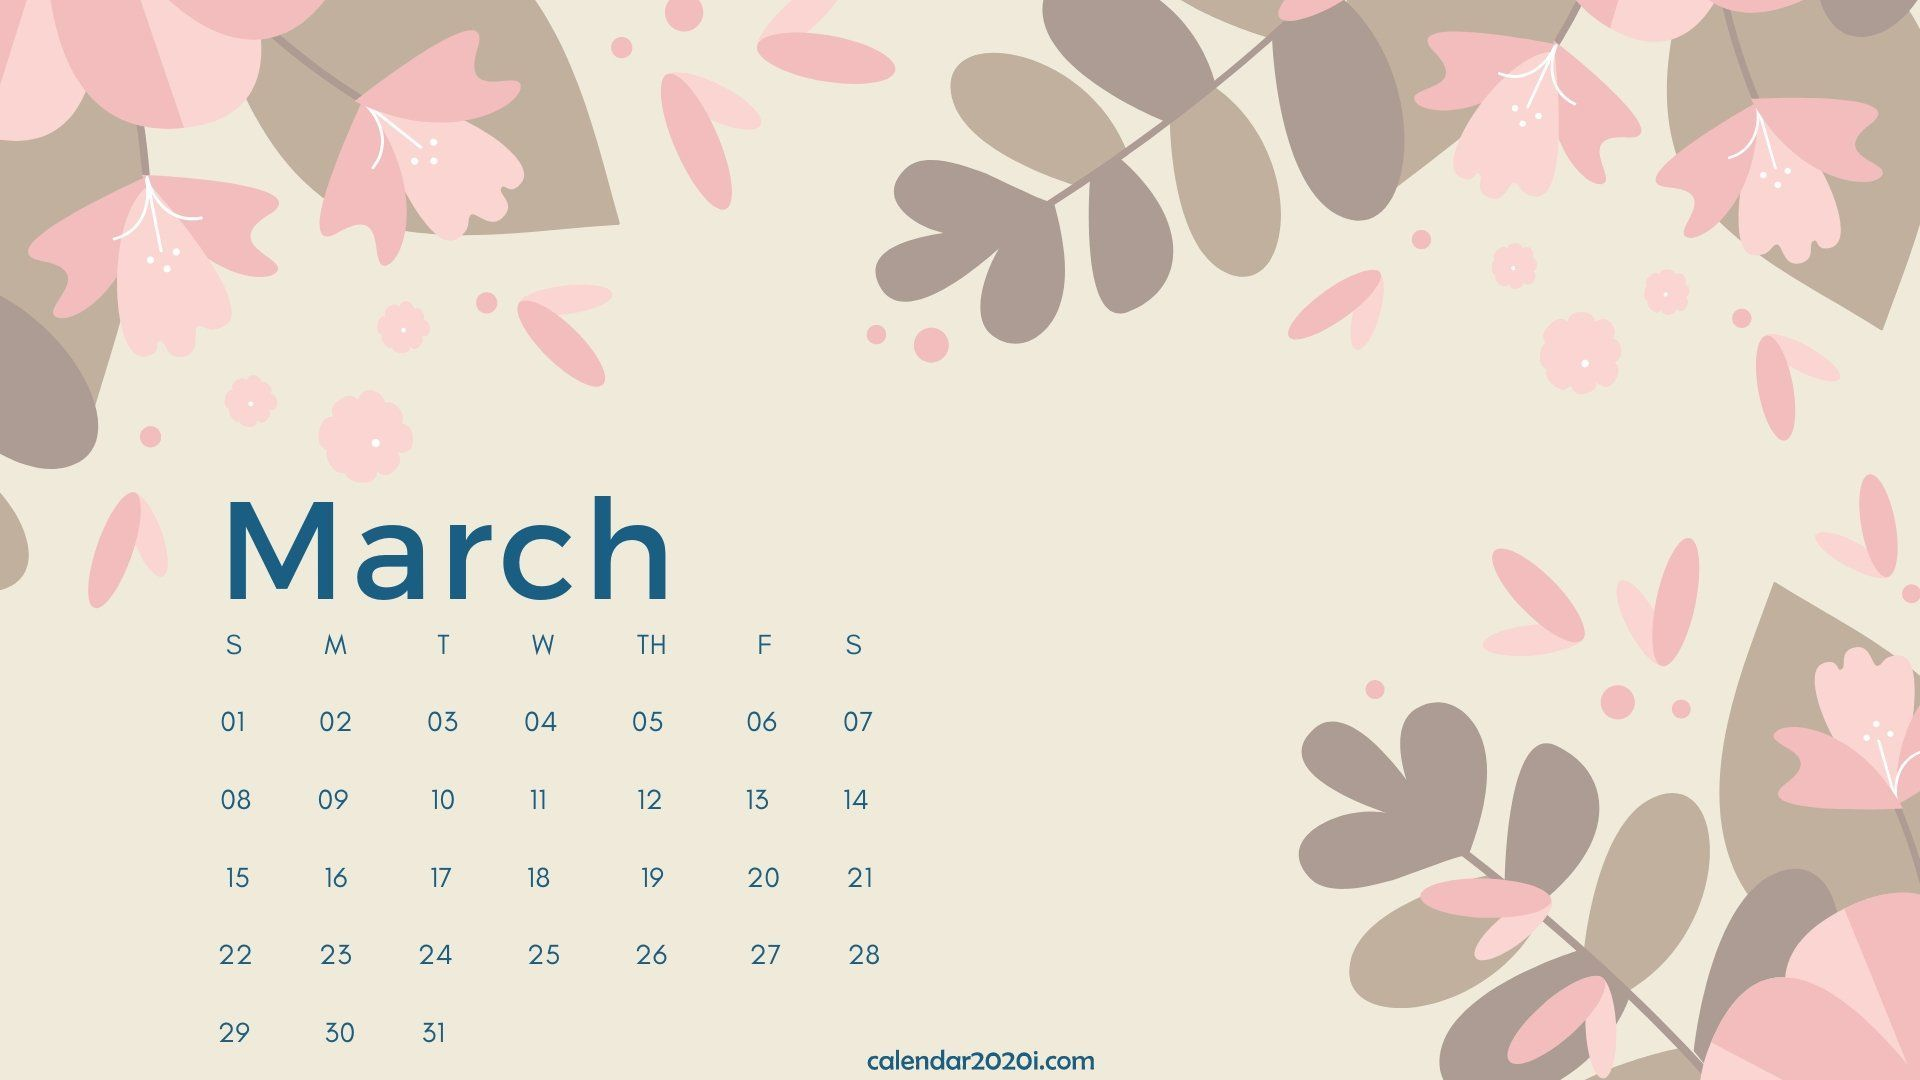 March 2020 Calendar Wallpapers   Top March 2020 Calendar 1920x1080